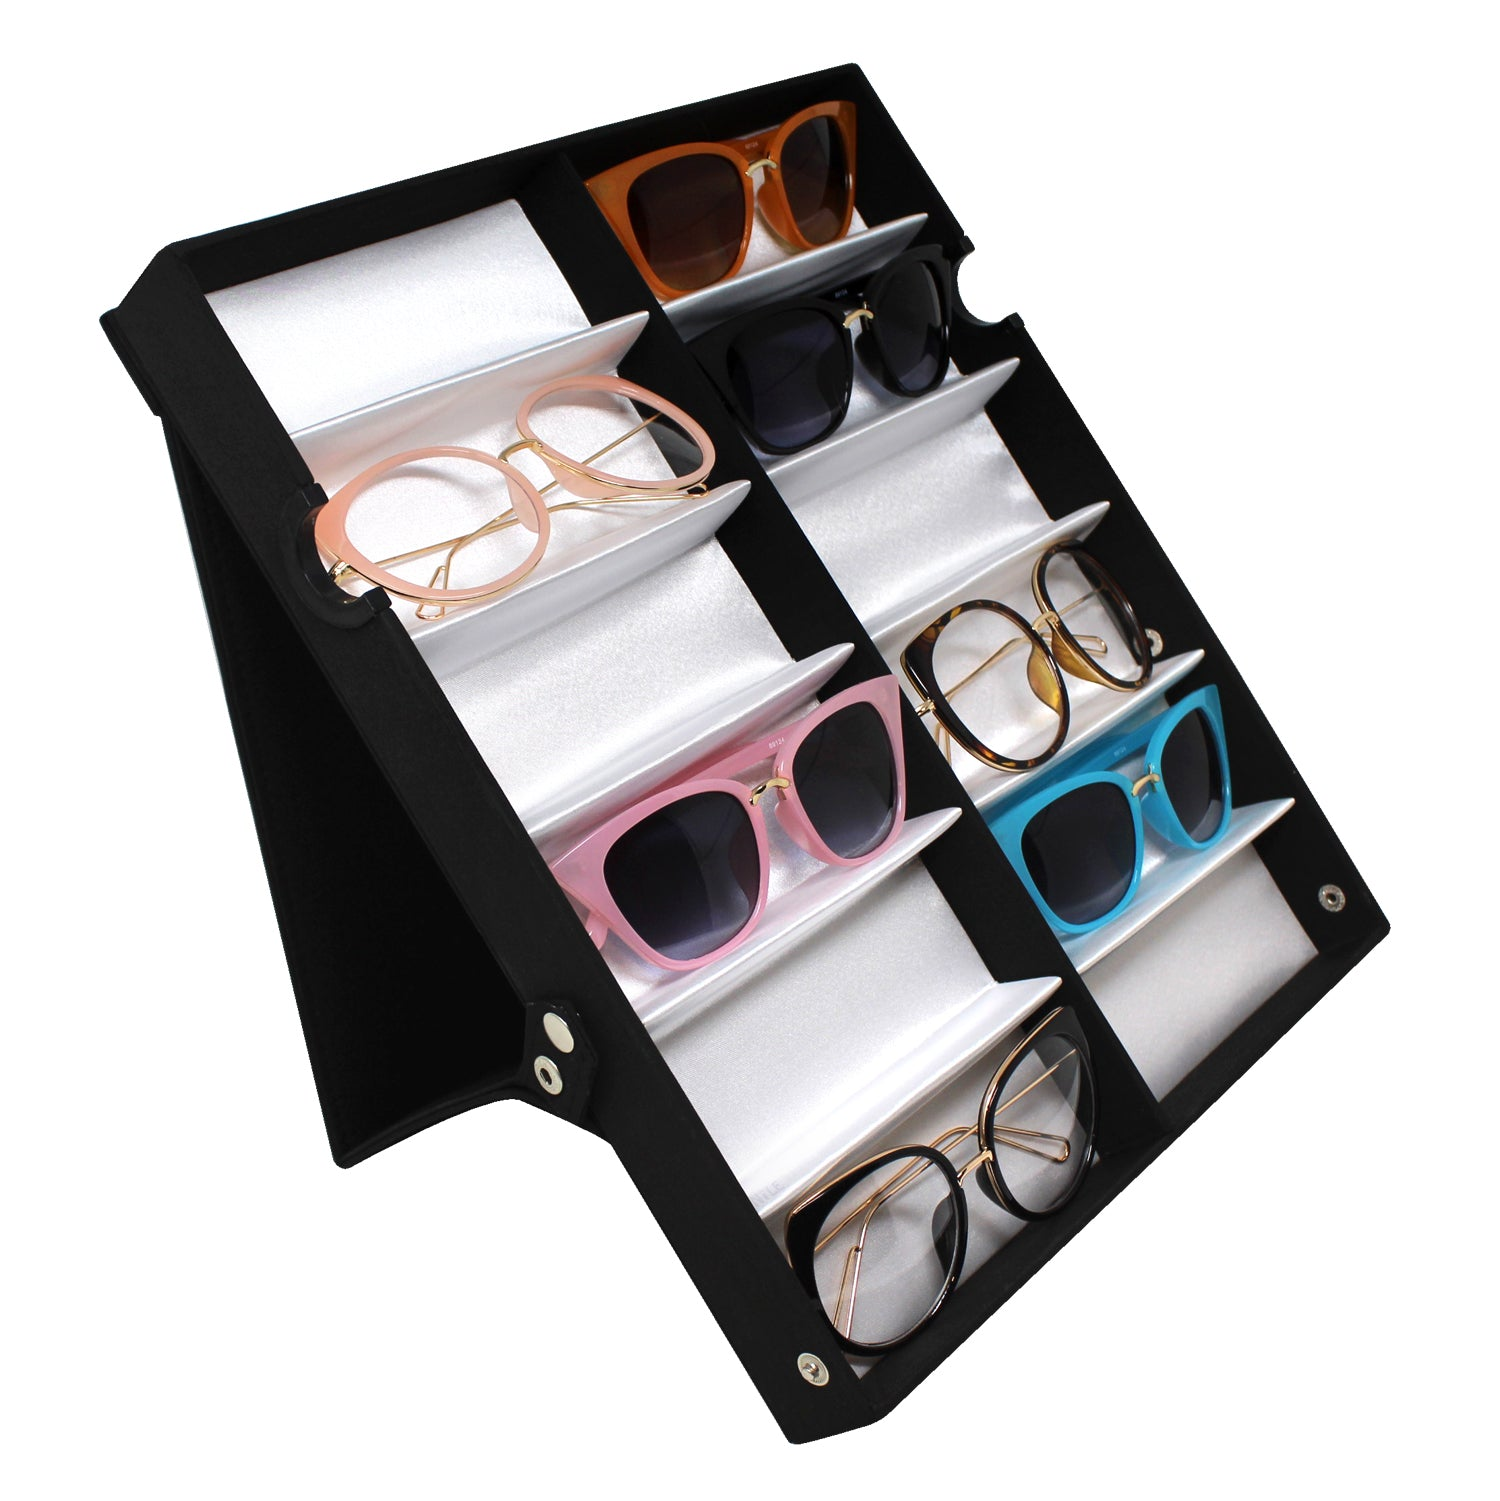 #TR-34VF Eyewear Storage And Display Case,Fabric Covered | APEX International